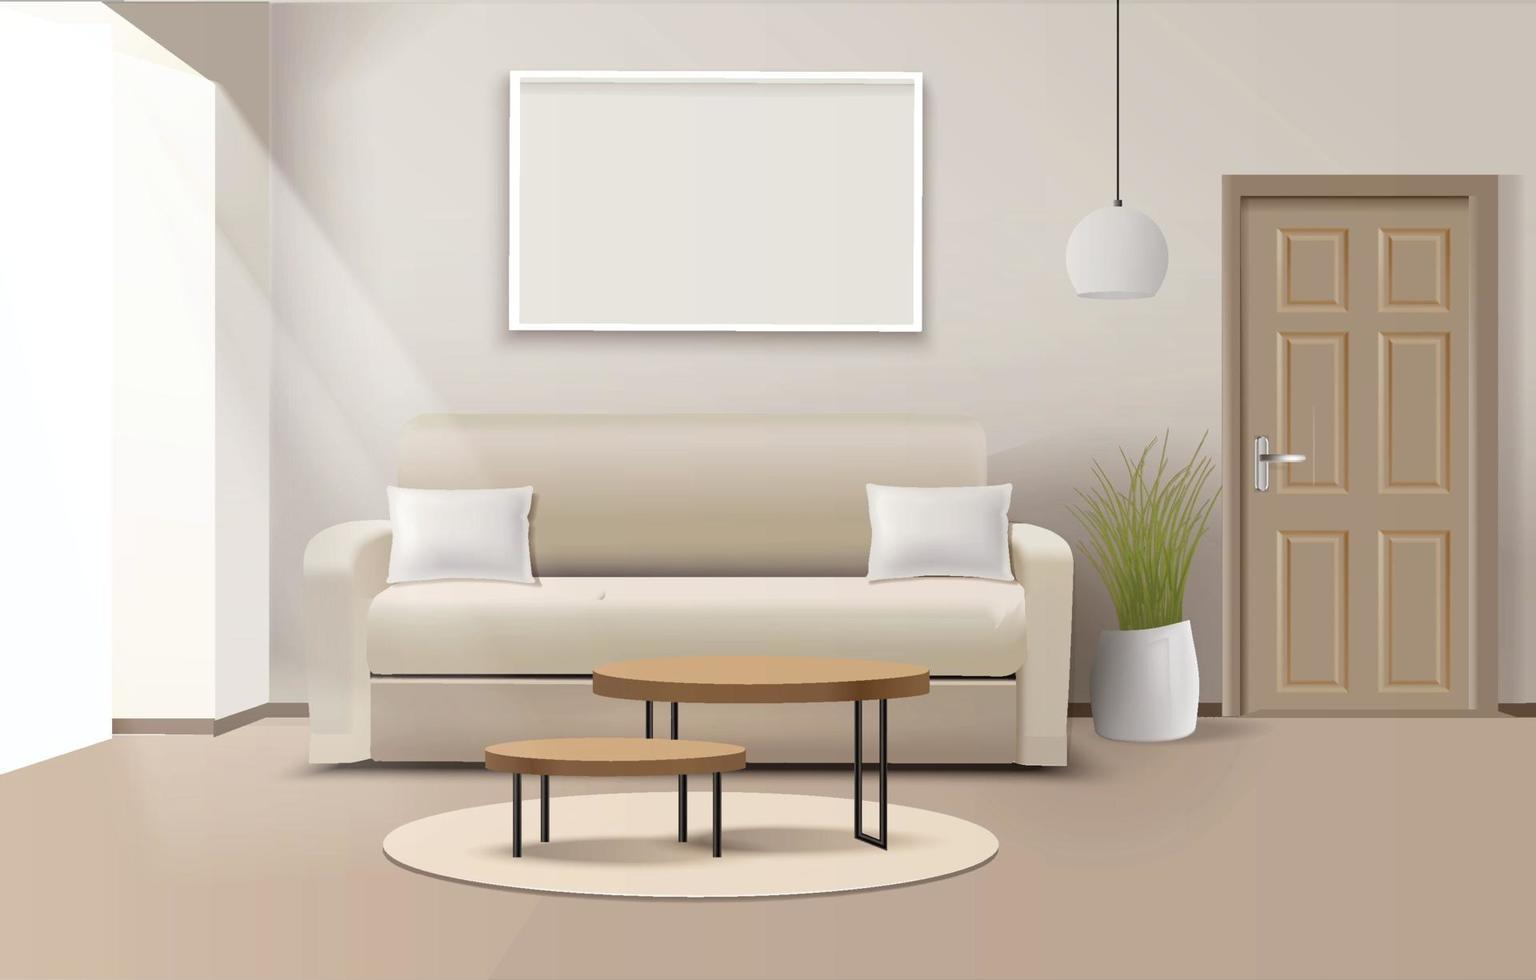 Modern living room interior with furniture vector